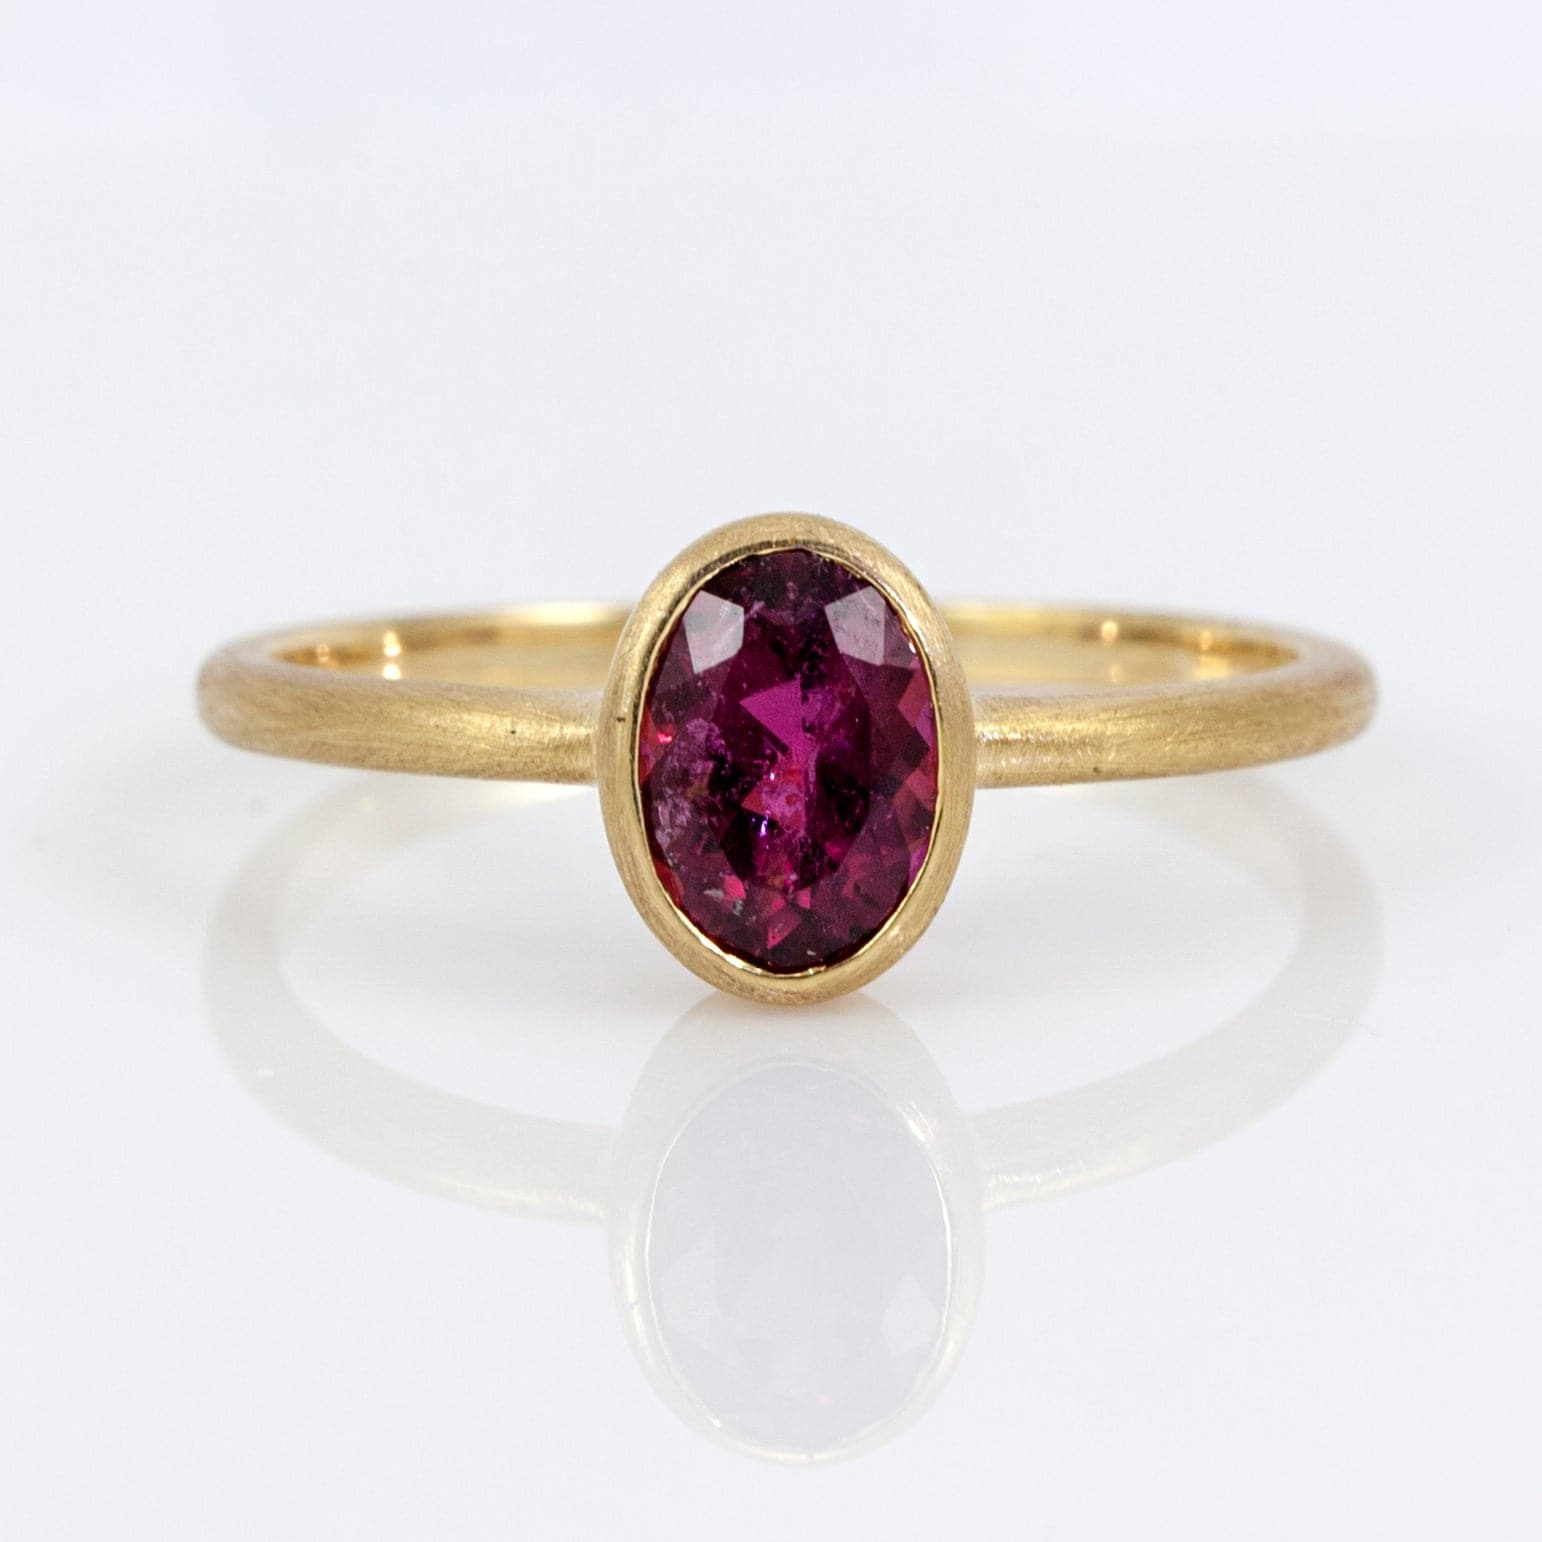 Nina 18K Yellow Gold Oval Rubellite Tourmaline Ring